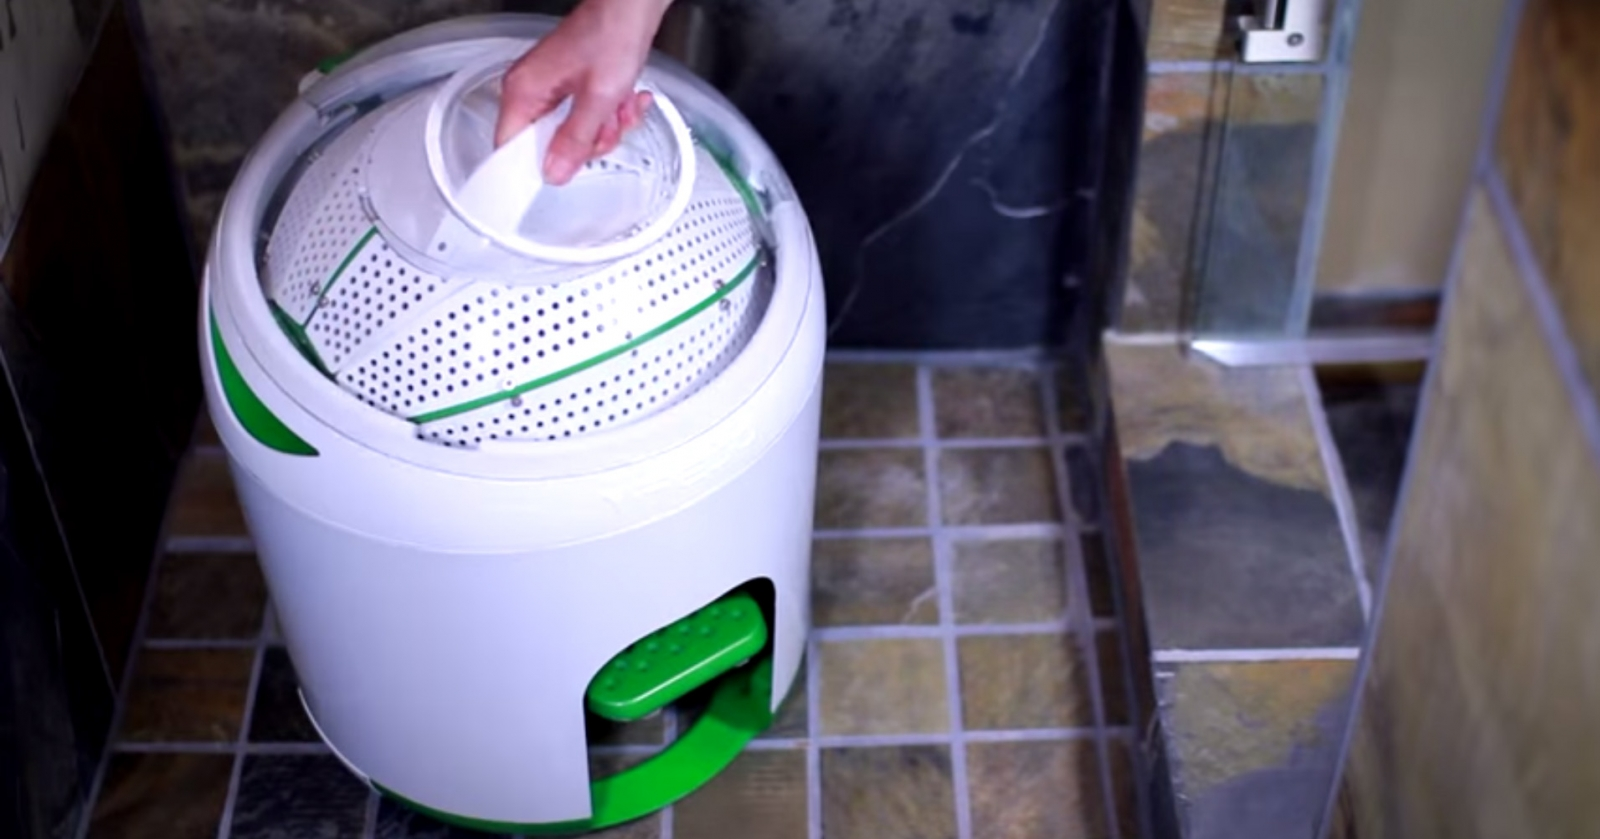 Drumi here 39 s a foot pedal powered washing machine that doesn 39 t need electricity - Machine a laver manuelle ...